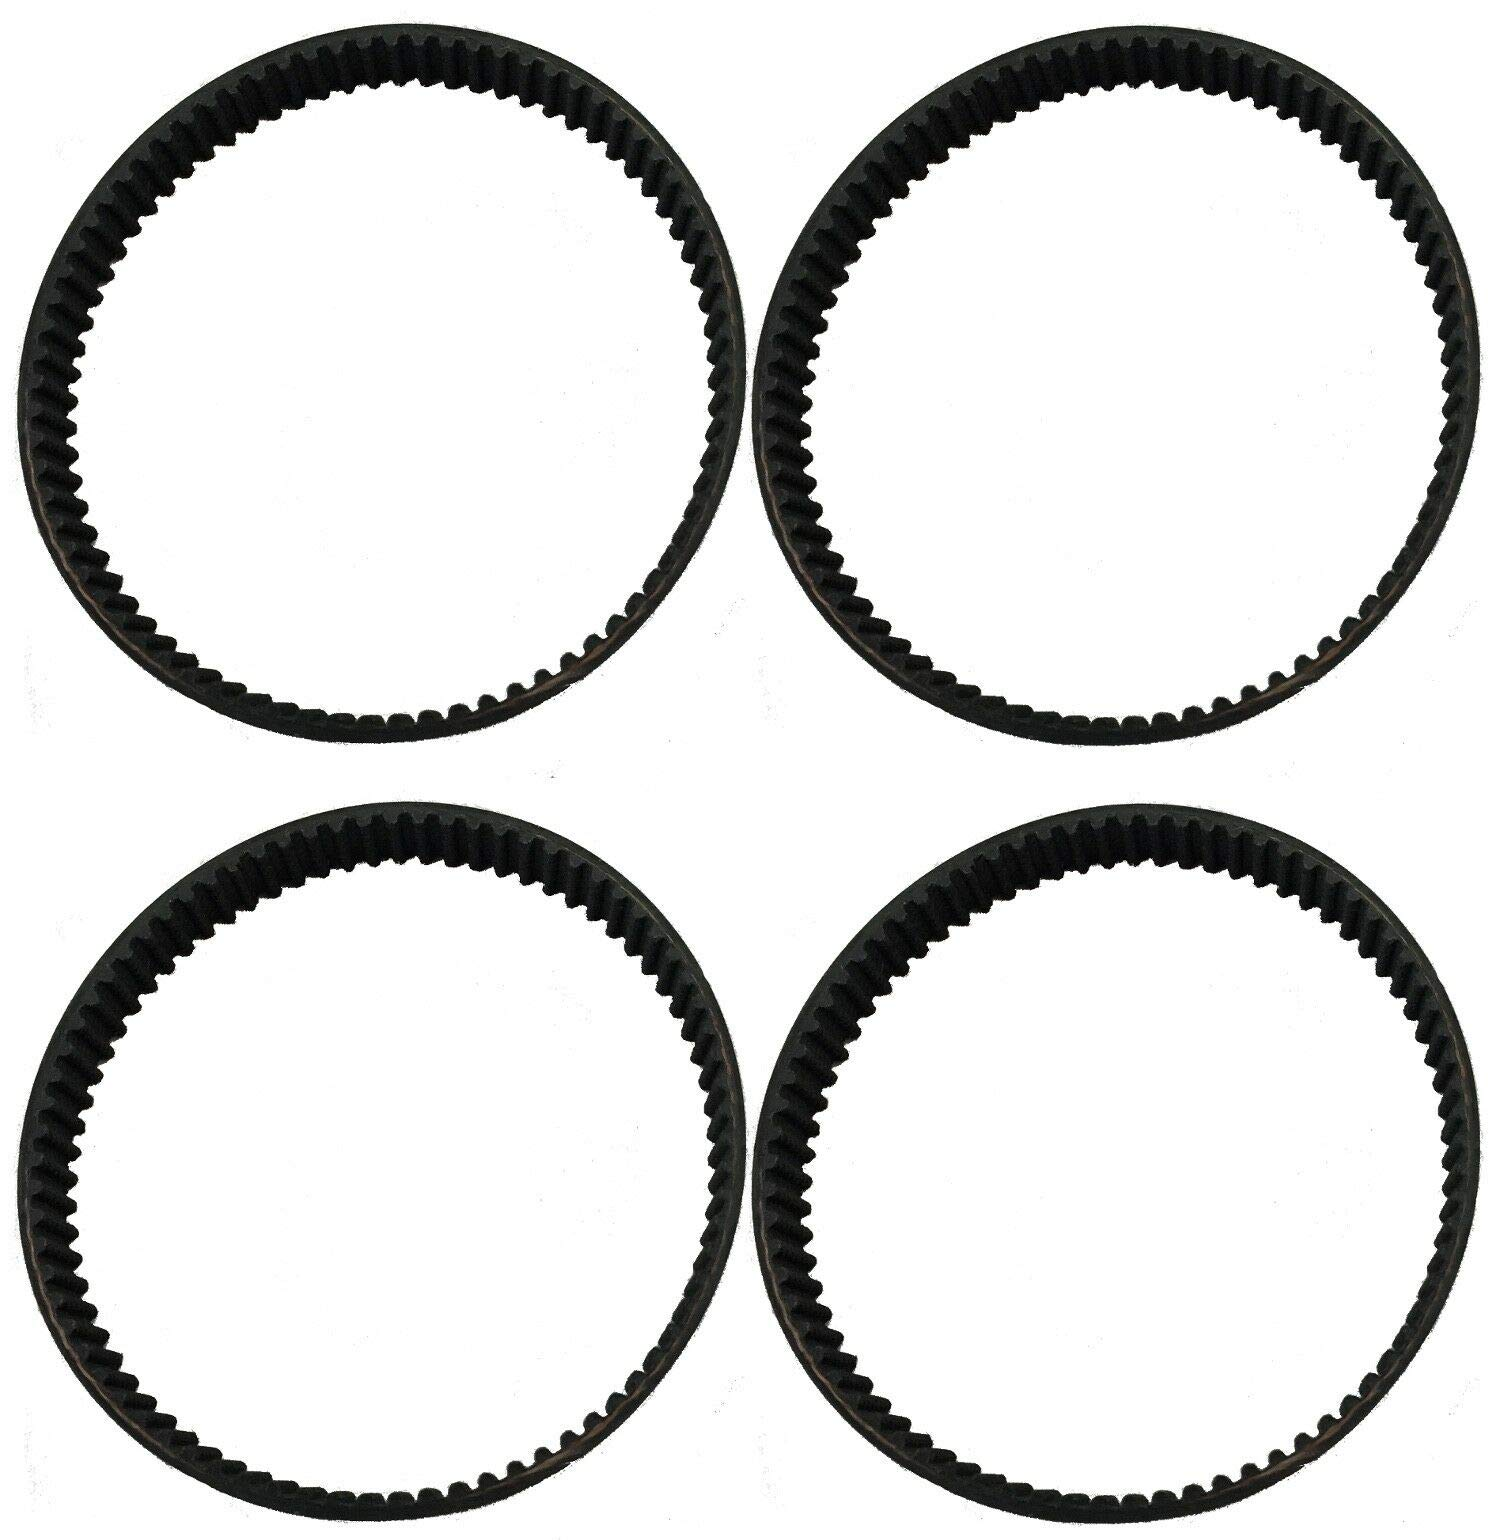 Belt for Dyson DC17 Animal Vacuum 10 mm (4) Pack by Live Shop